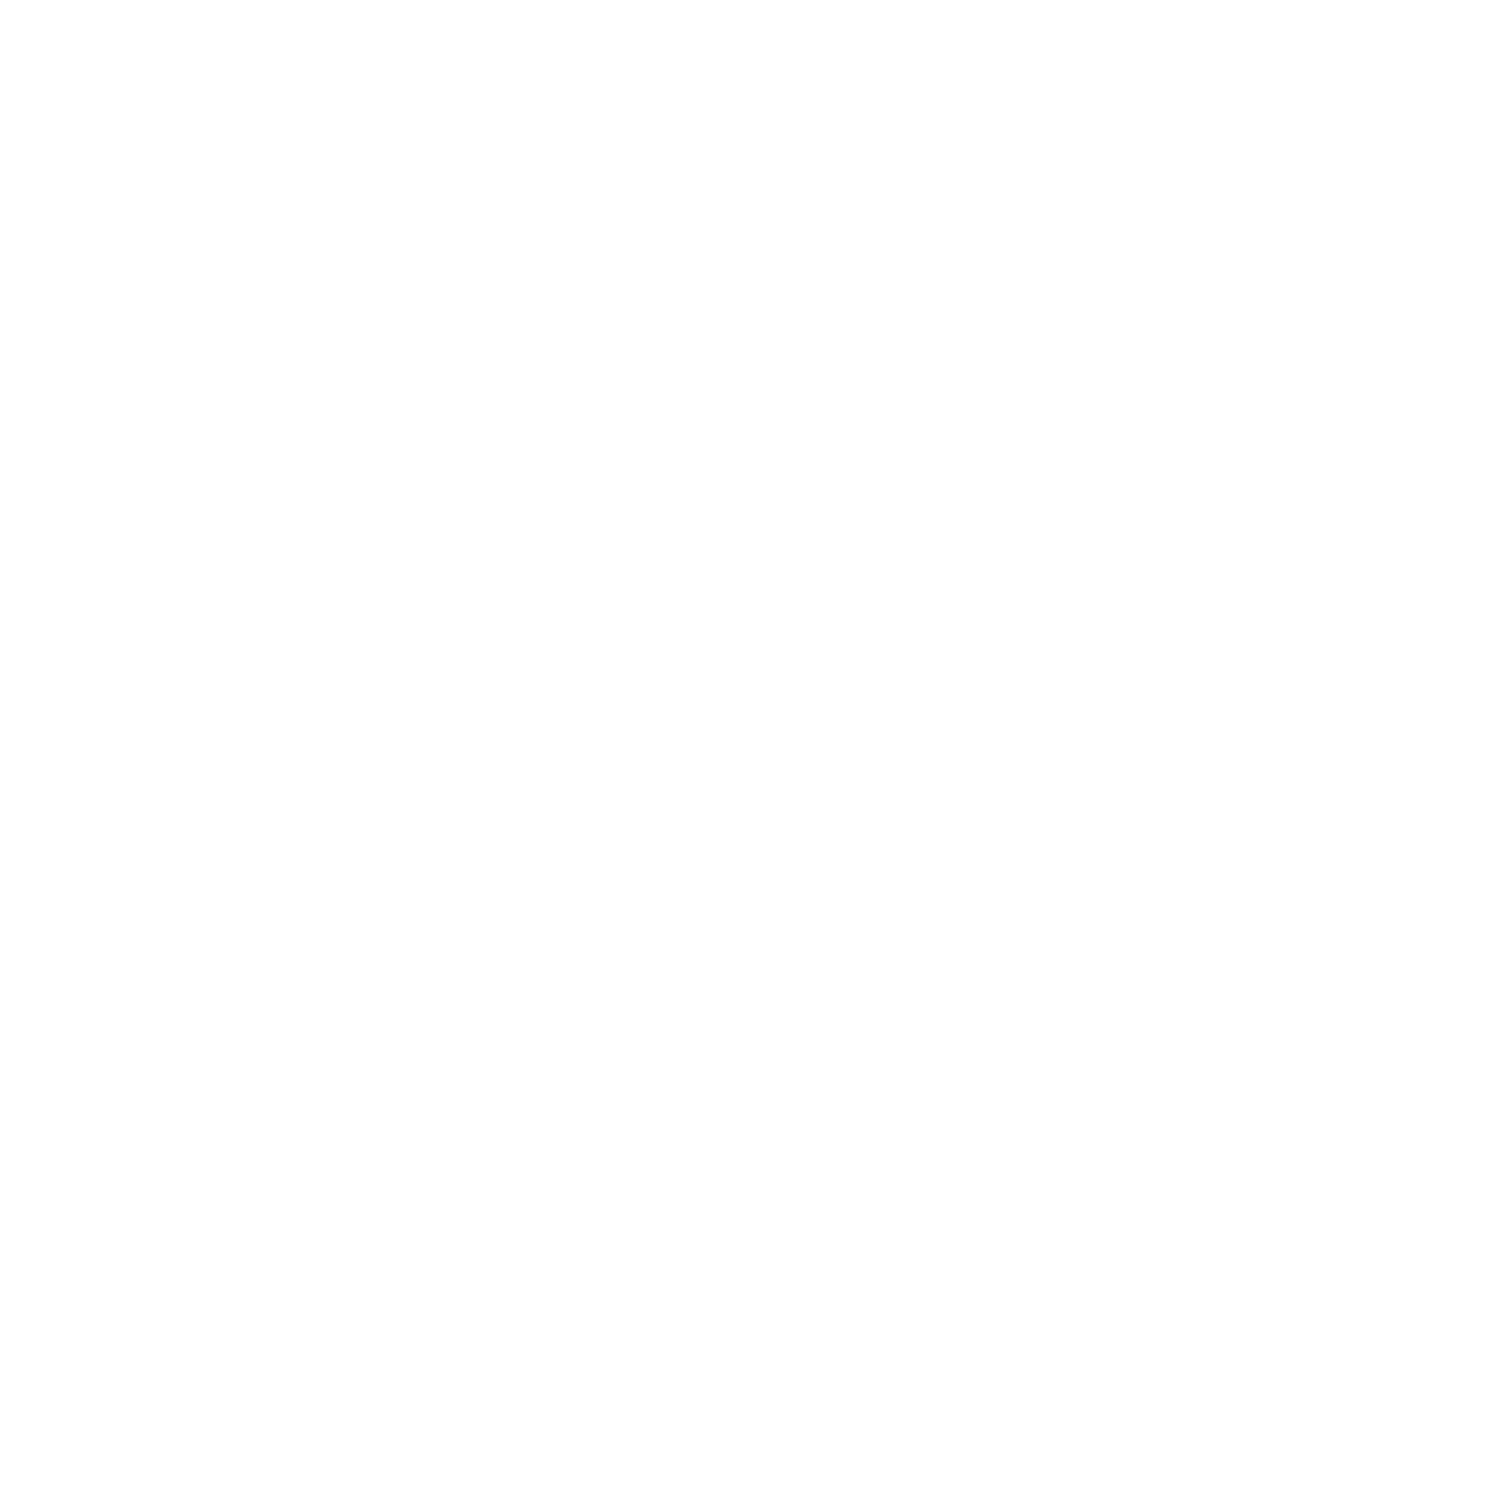 Farm-To-Fork SF